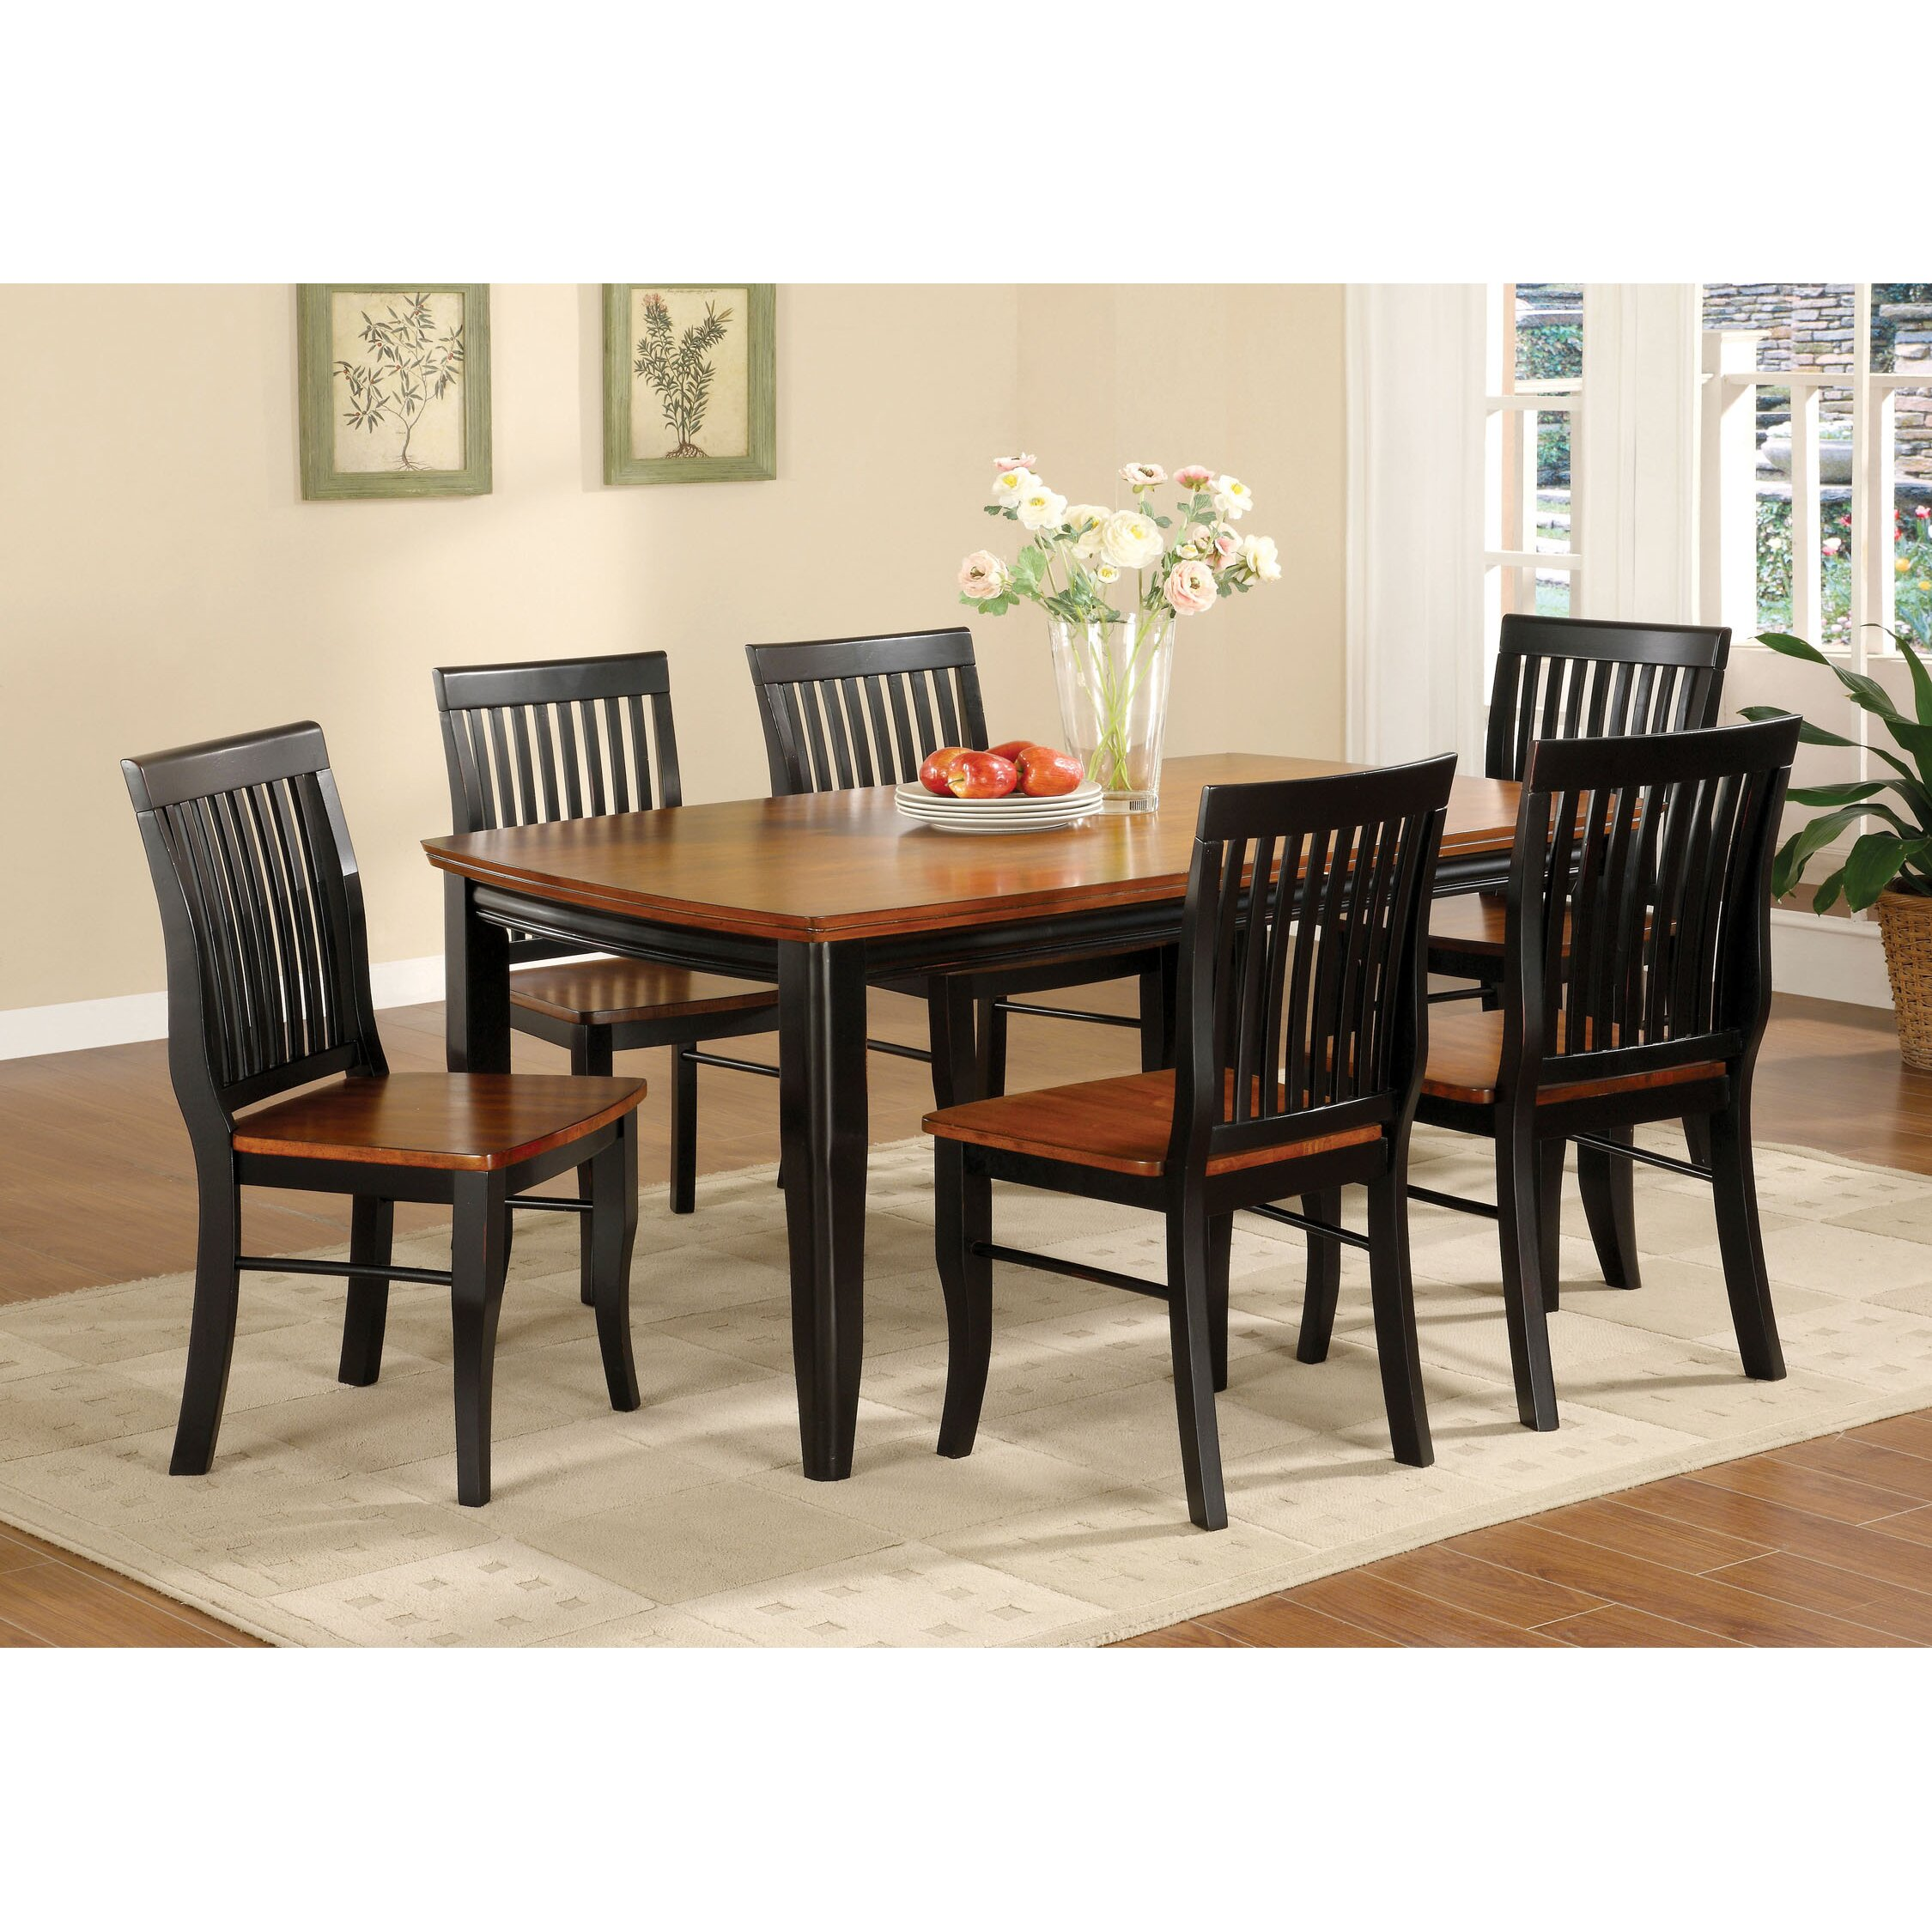 Black Dining Room Table And Chairs: Hokku Designs Pedrina 7 Piece Dining Set & Reviews